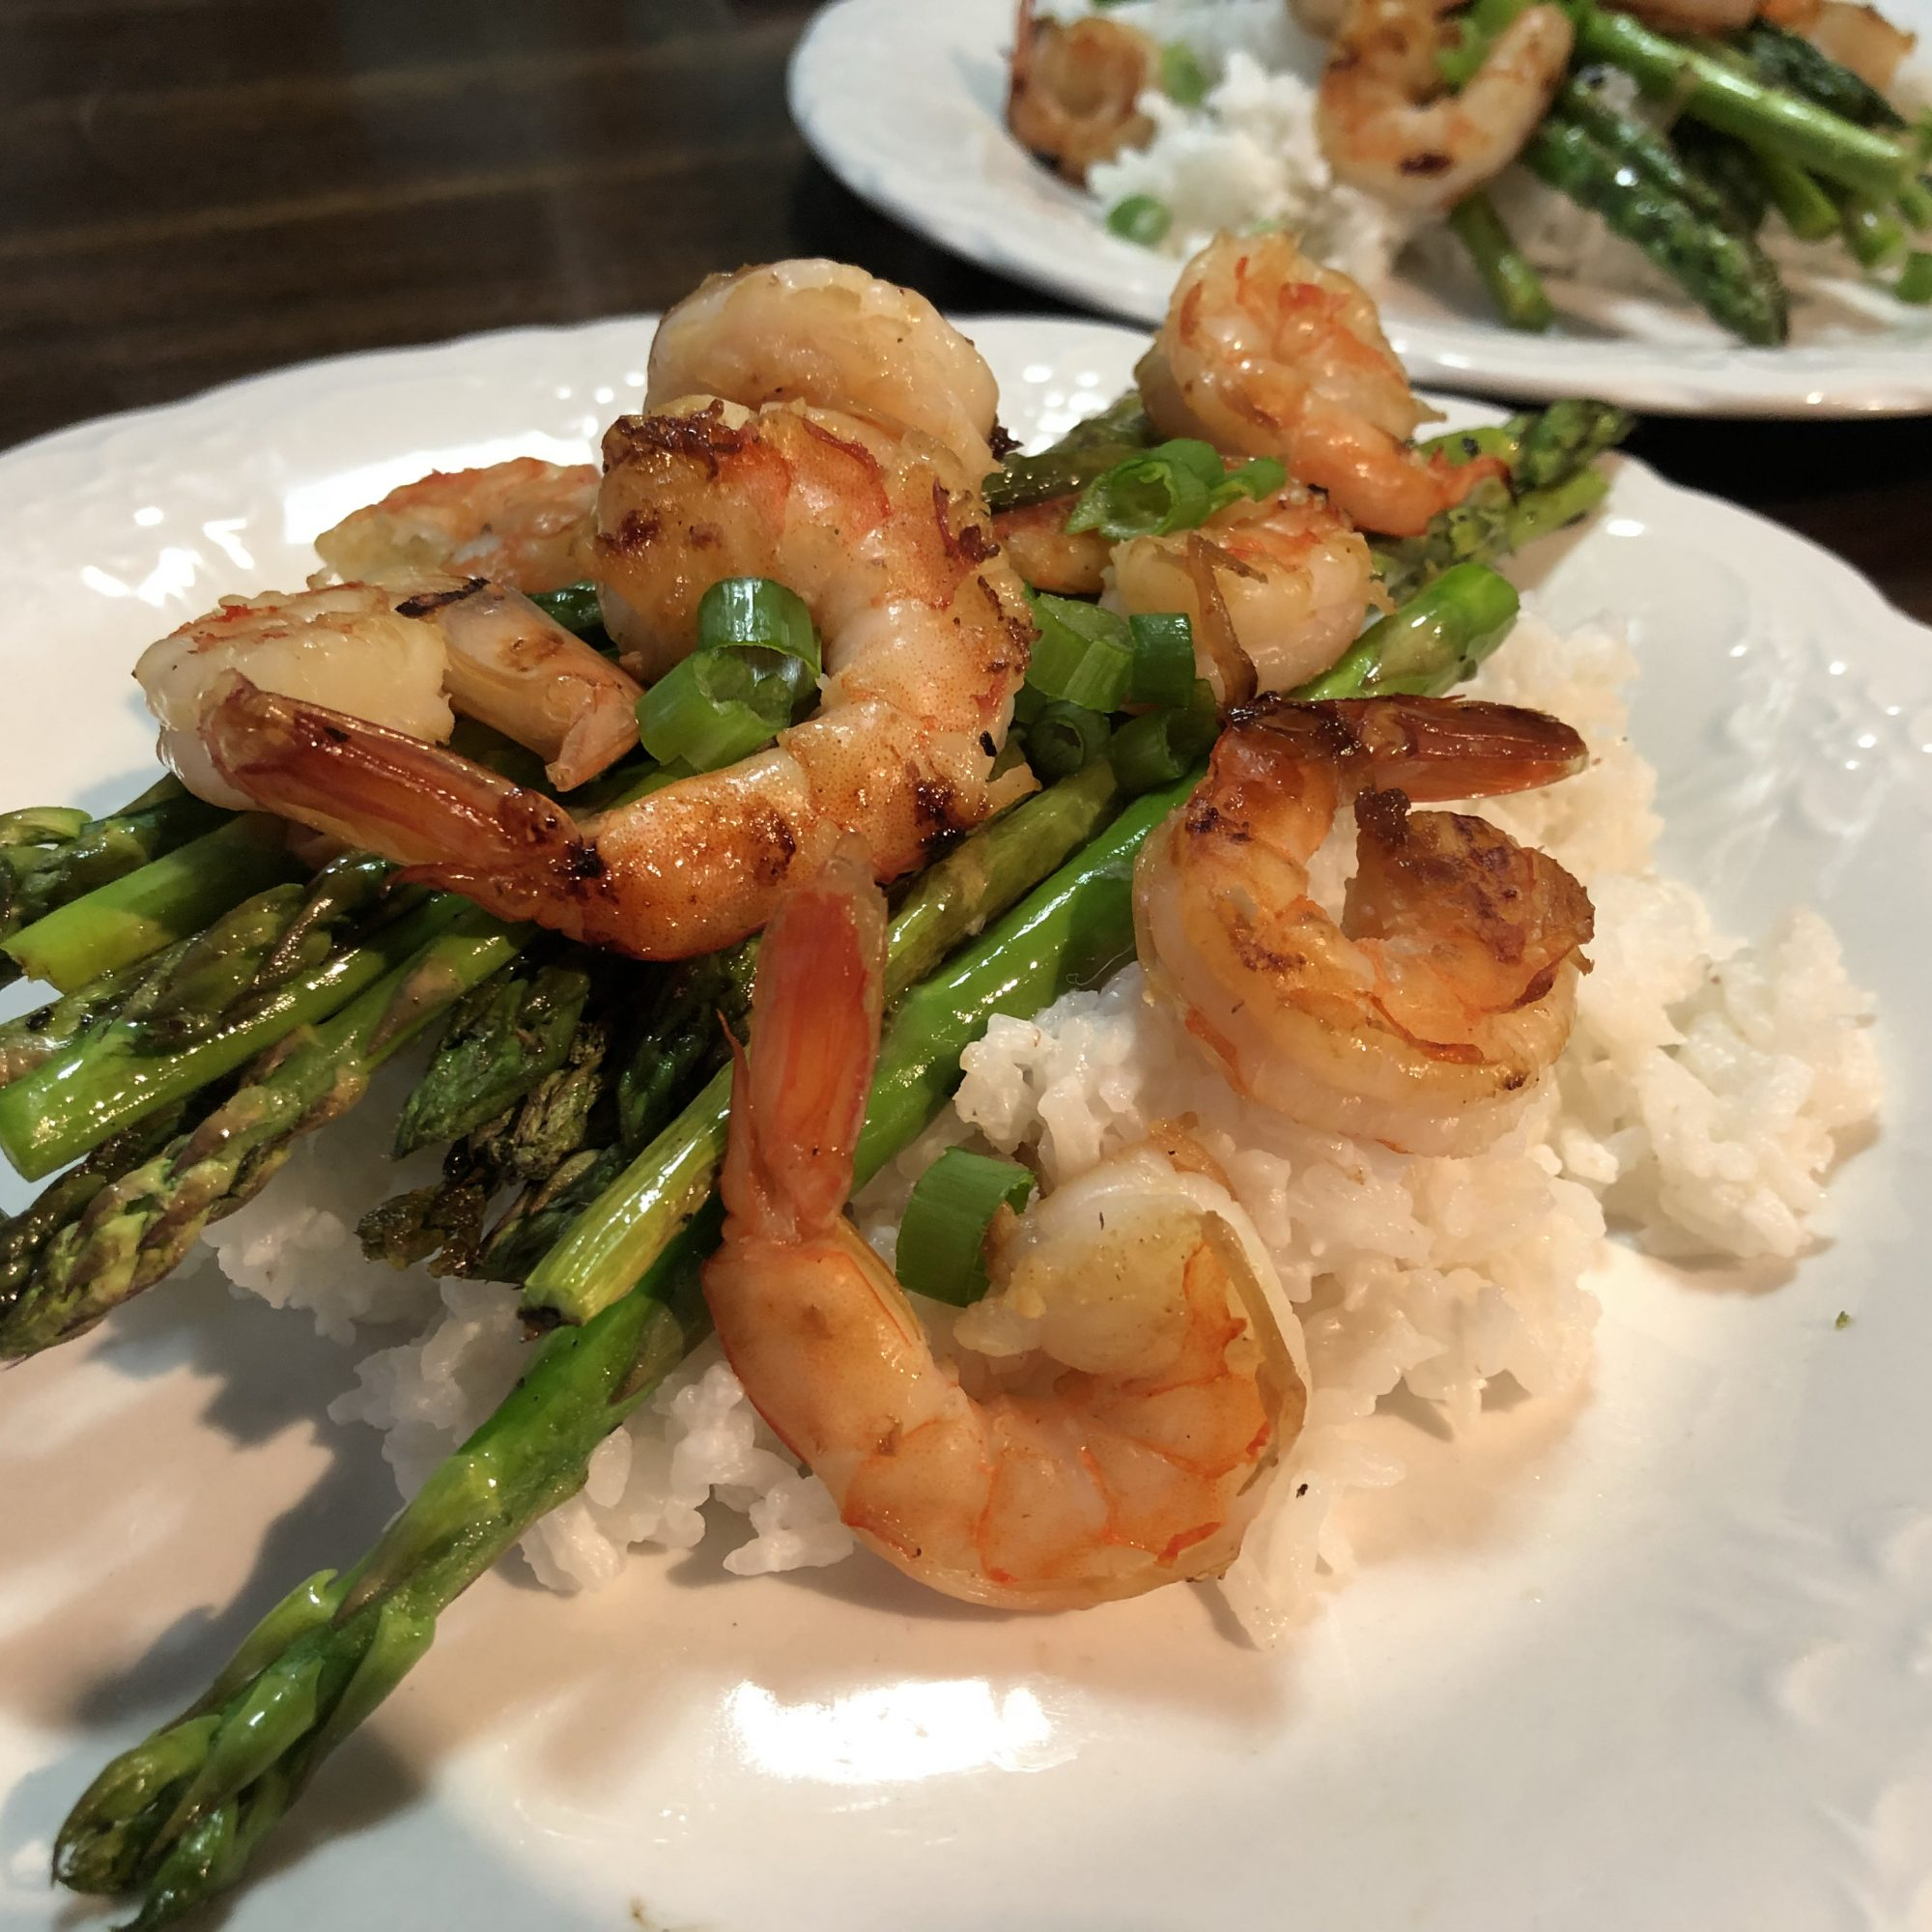 grilled teriyaki shrimp with asparagus over bed of white rice